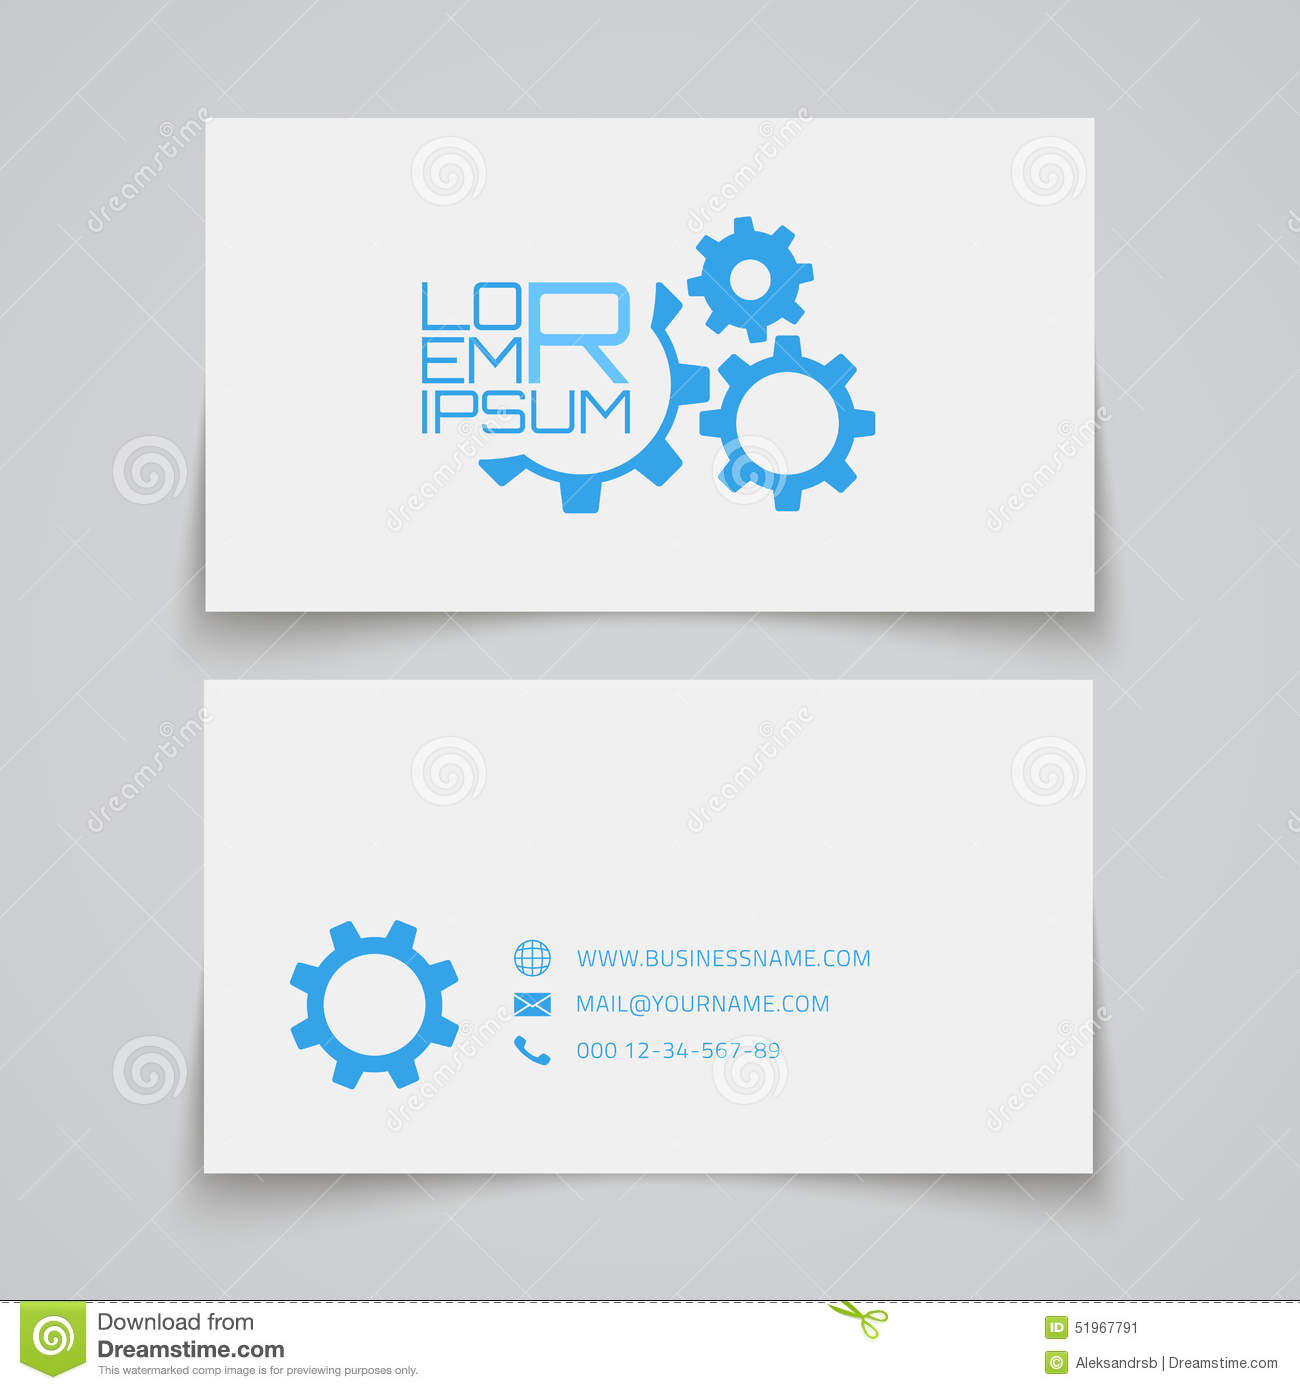 Excellent 1 Page Resumes Thick 10 Envelope Template Indesign Flat 100 Day Plan Template 10x13 Envelope Template Old 16x20 Collage Template Purple18th Birthday Invitation Templates Business Card Template. Gears Concept Logo Stock Illustration ..